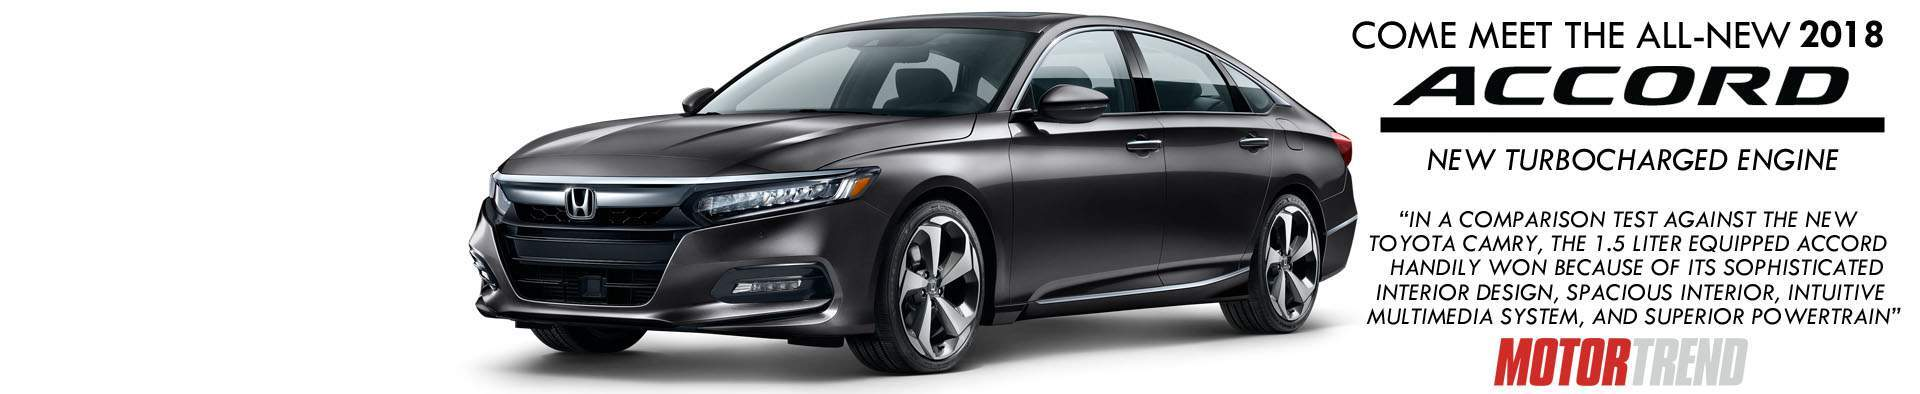 Meet the 2018 Accord